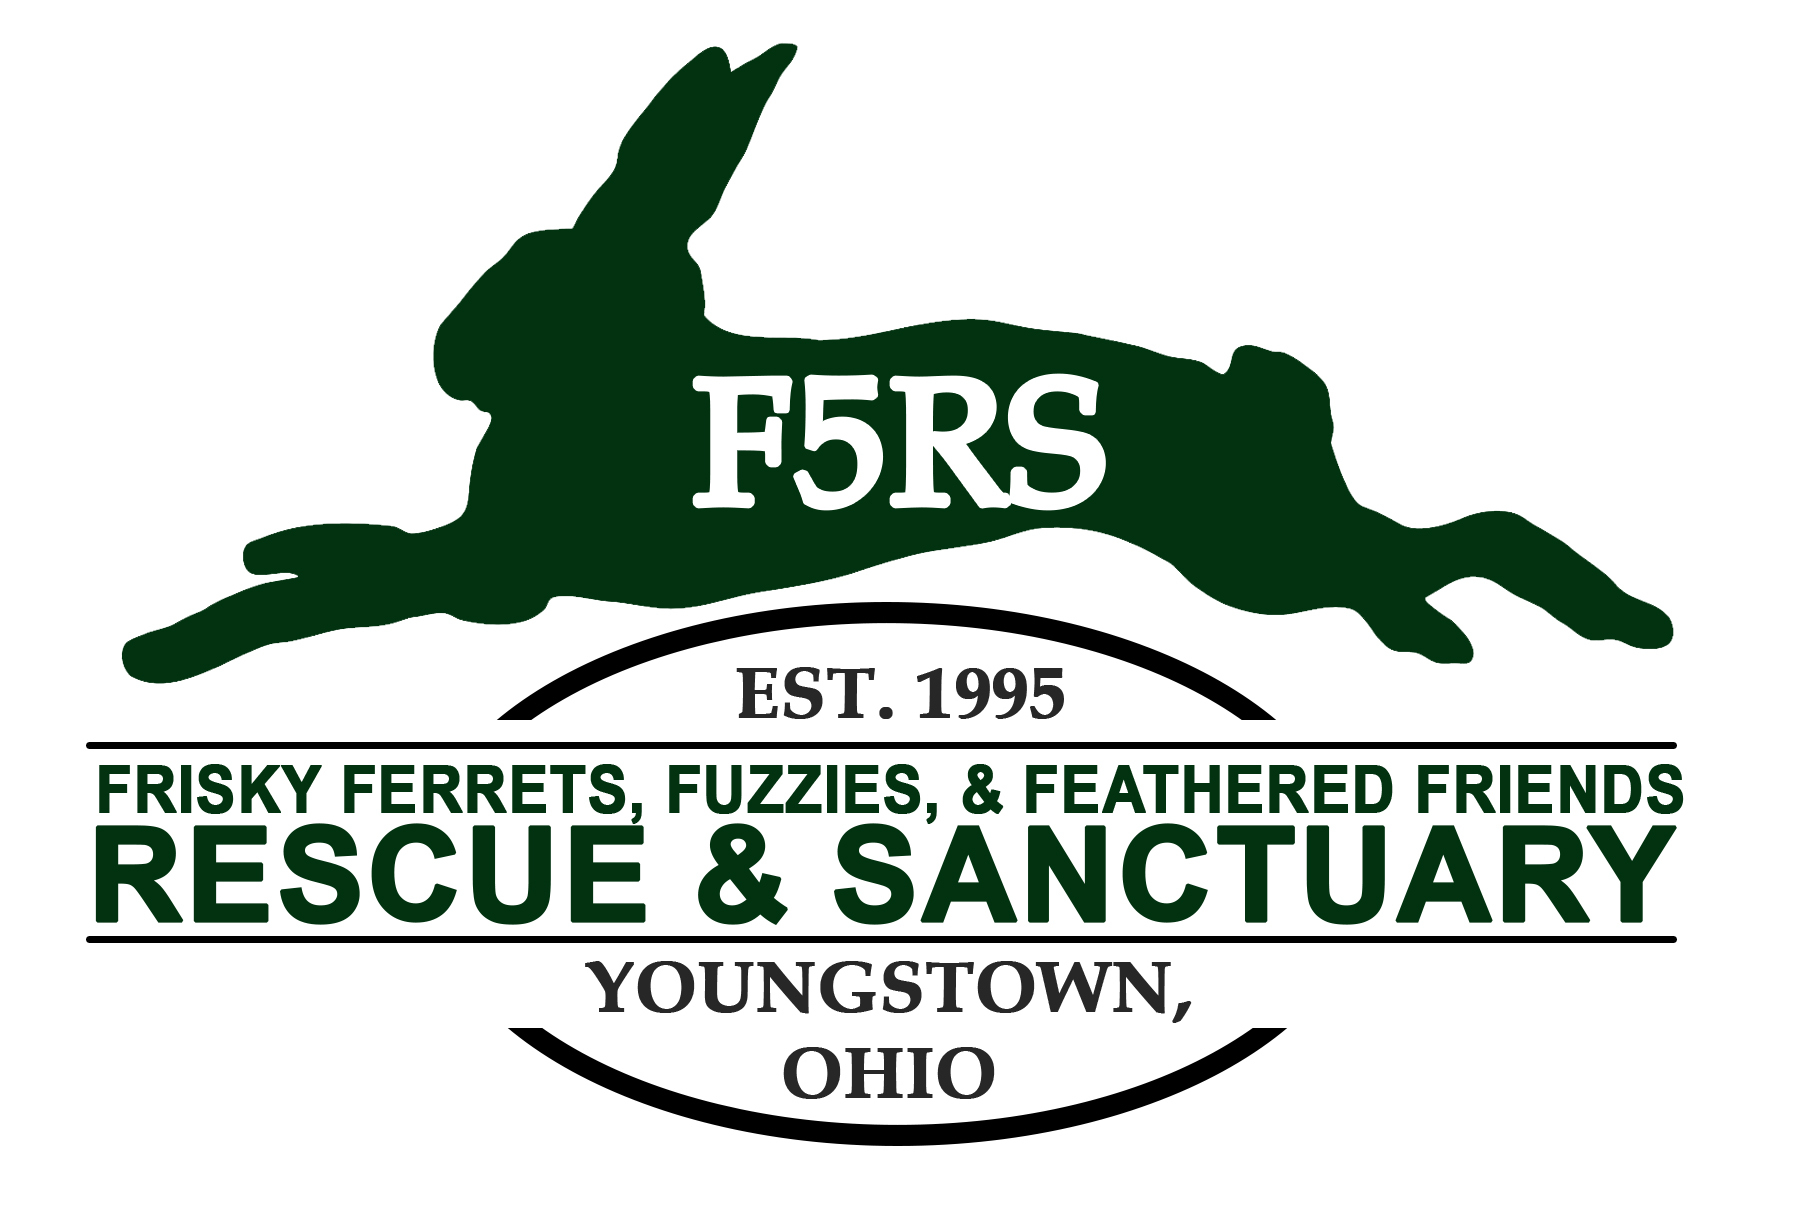 F5RS - Frisky Ferrets Fuzzies Feathered Friends Rescue